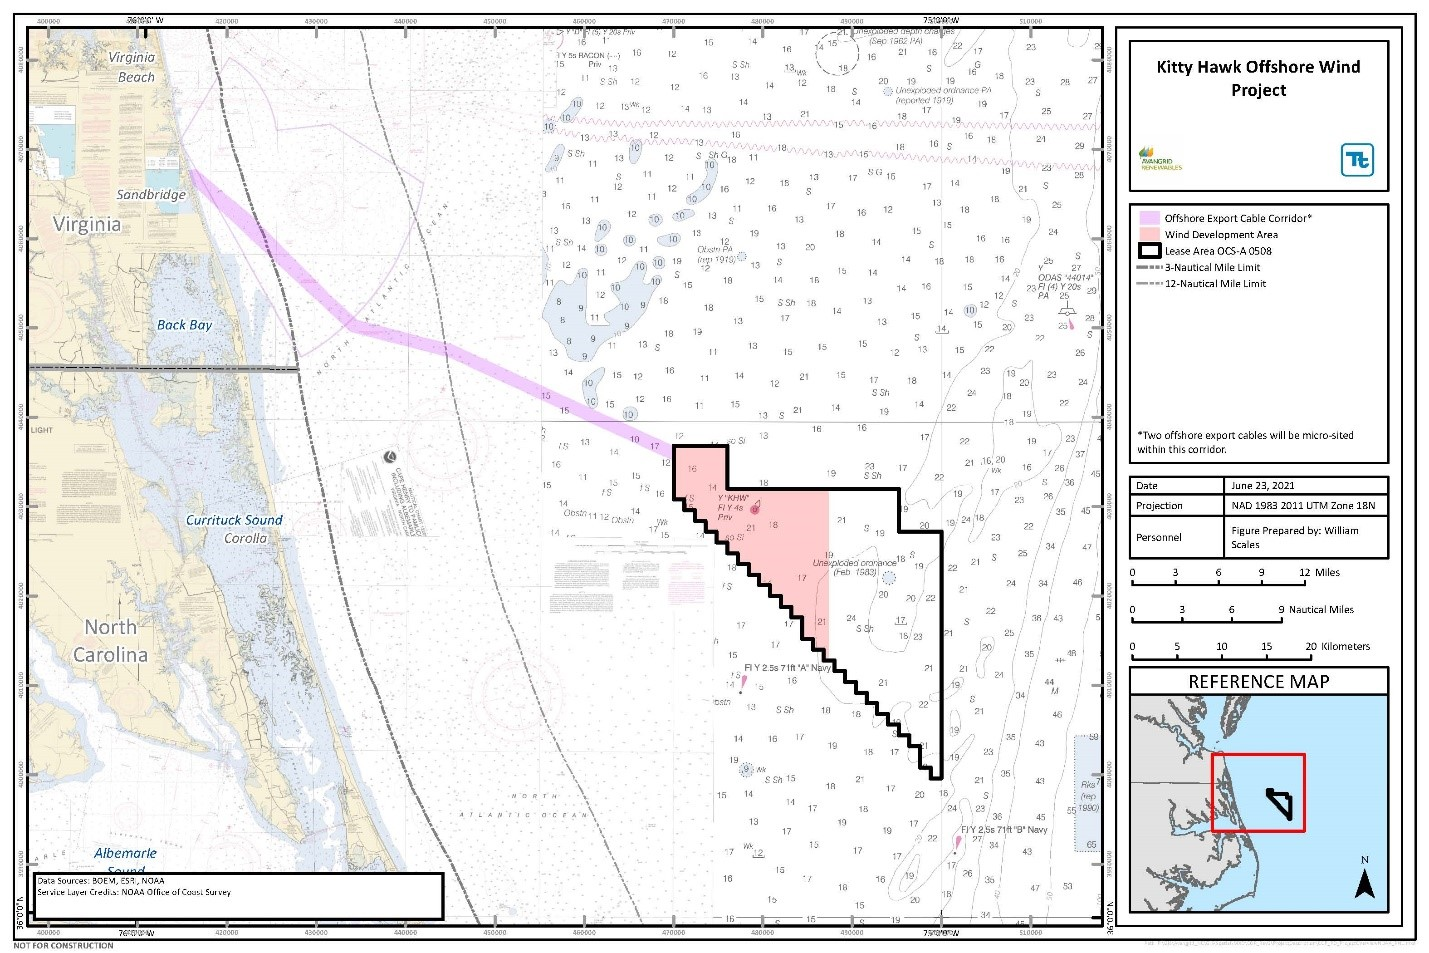 Map of Kitty Hawk offshore area